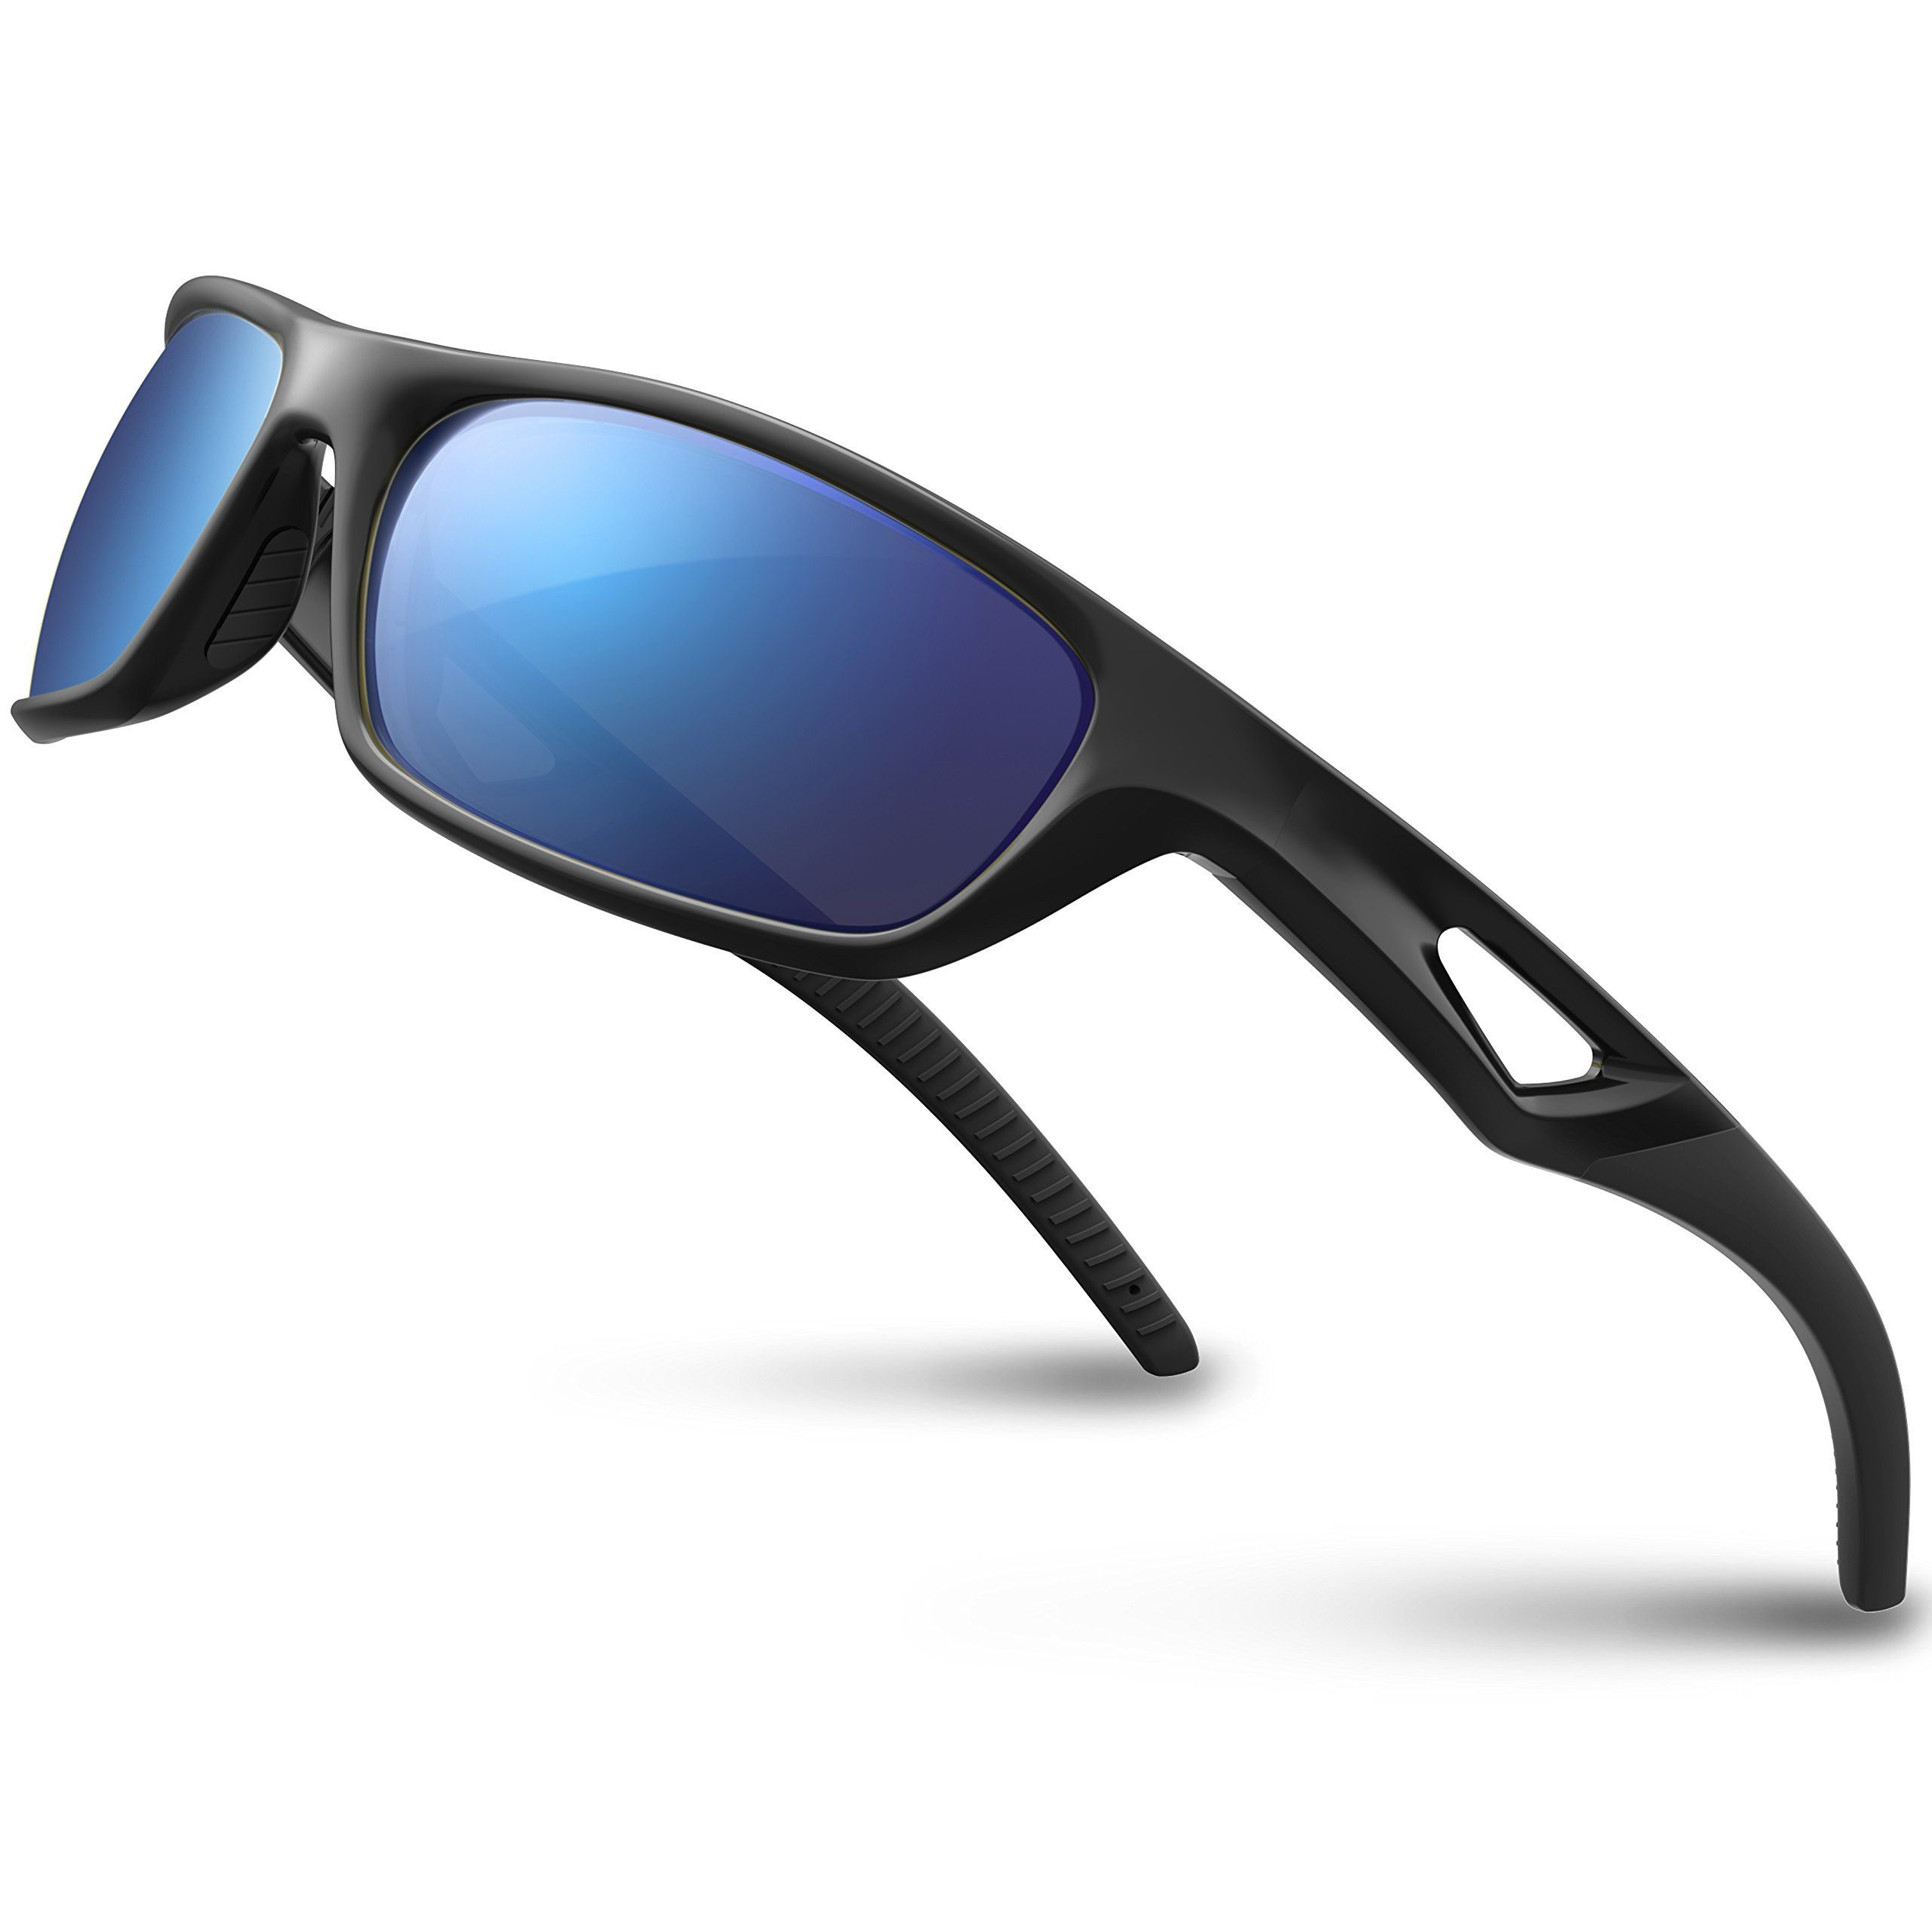 a54832592c Women Golf Clothing - RIVBOS Polarized Sports Sunglasses Driving Glasses  for Men Women Tr90 Unbreakable Frame for Cycling Baseball Running Rb831  Black Black ...